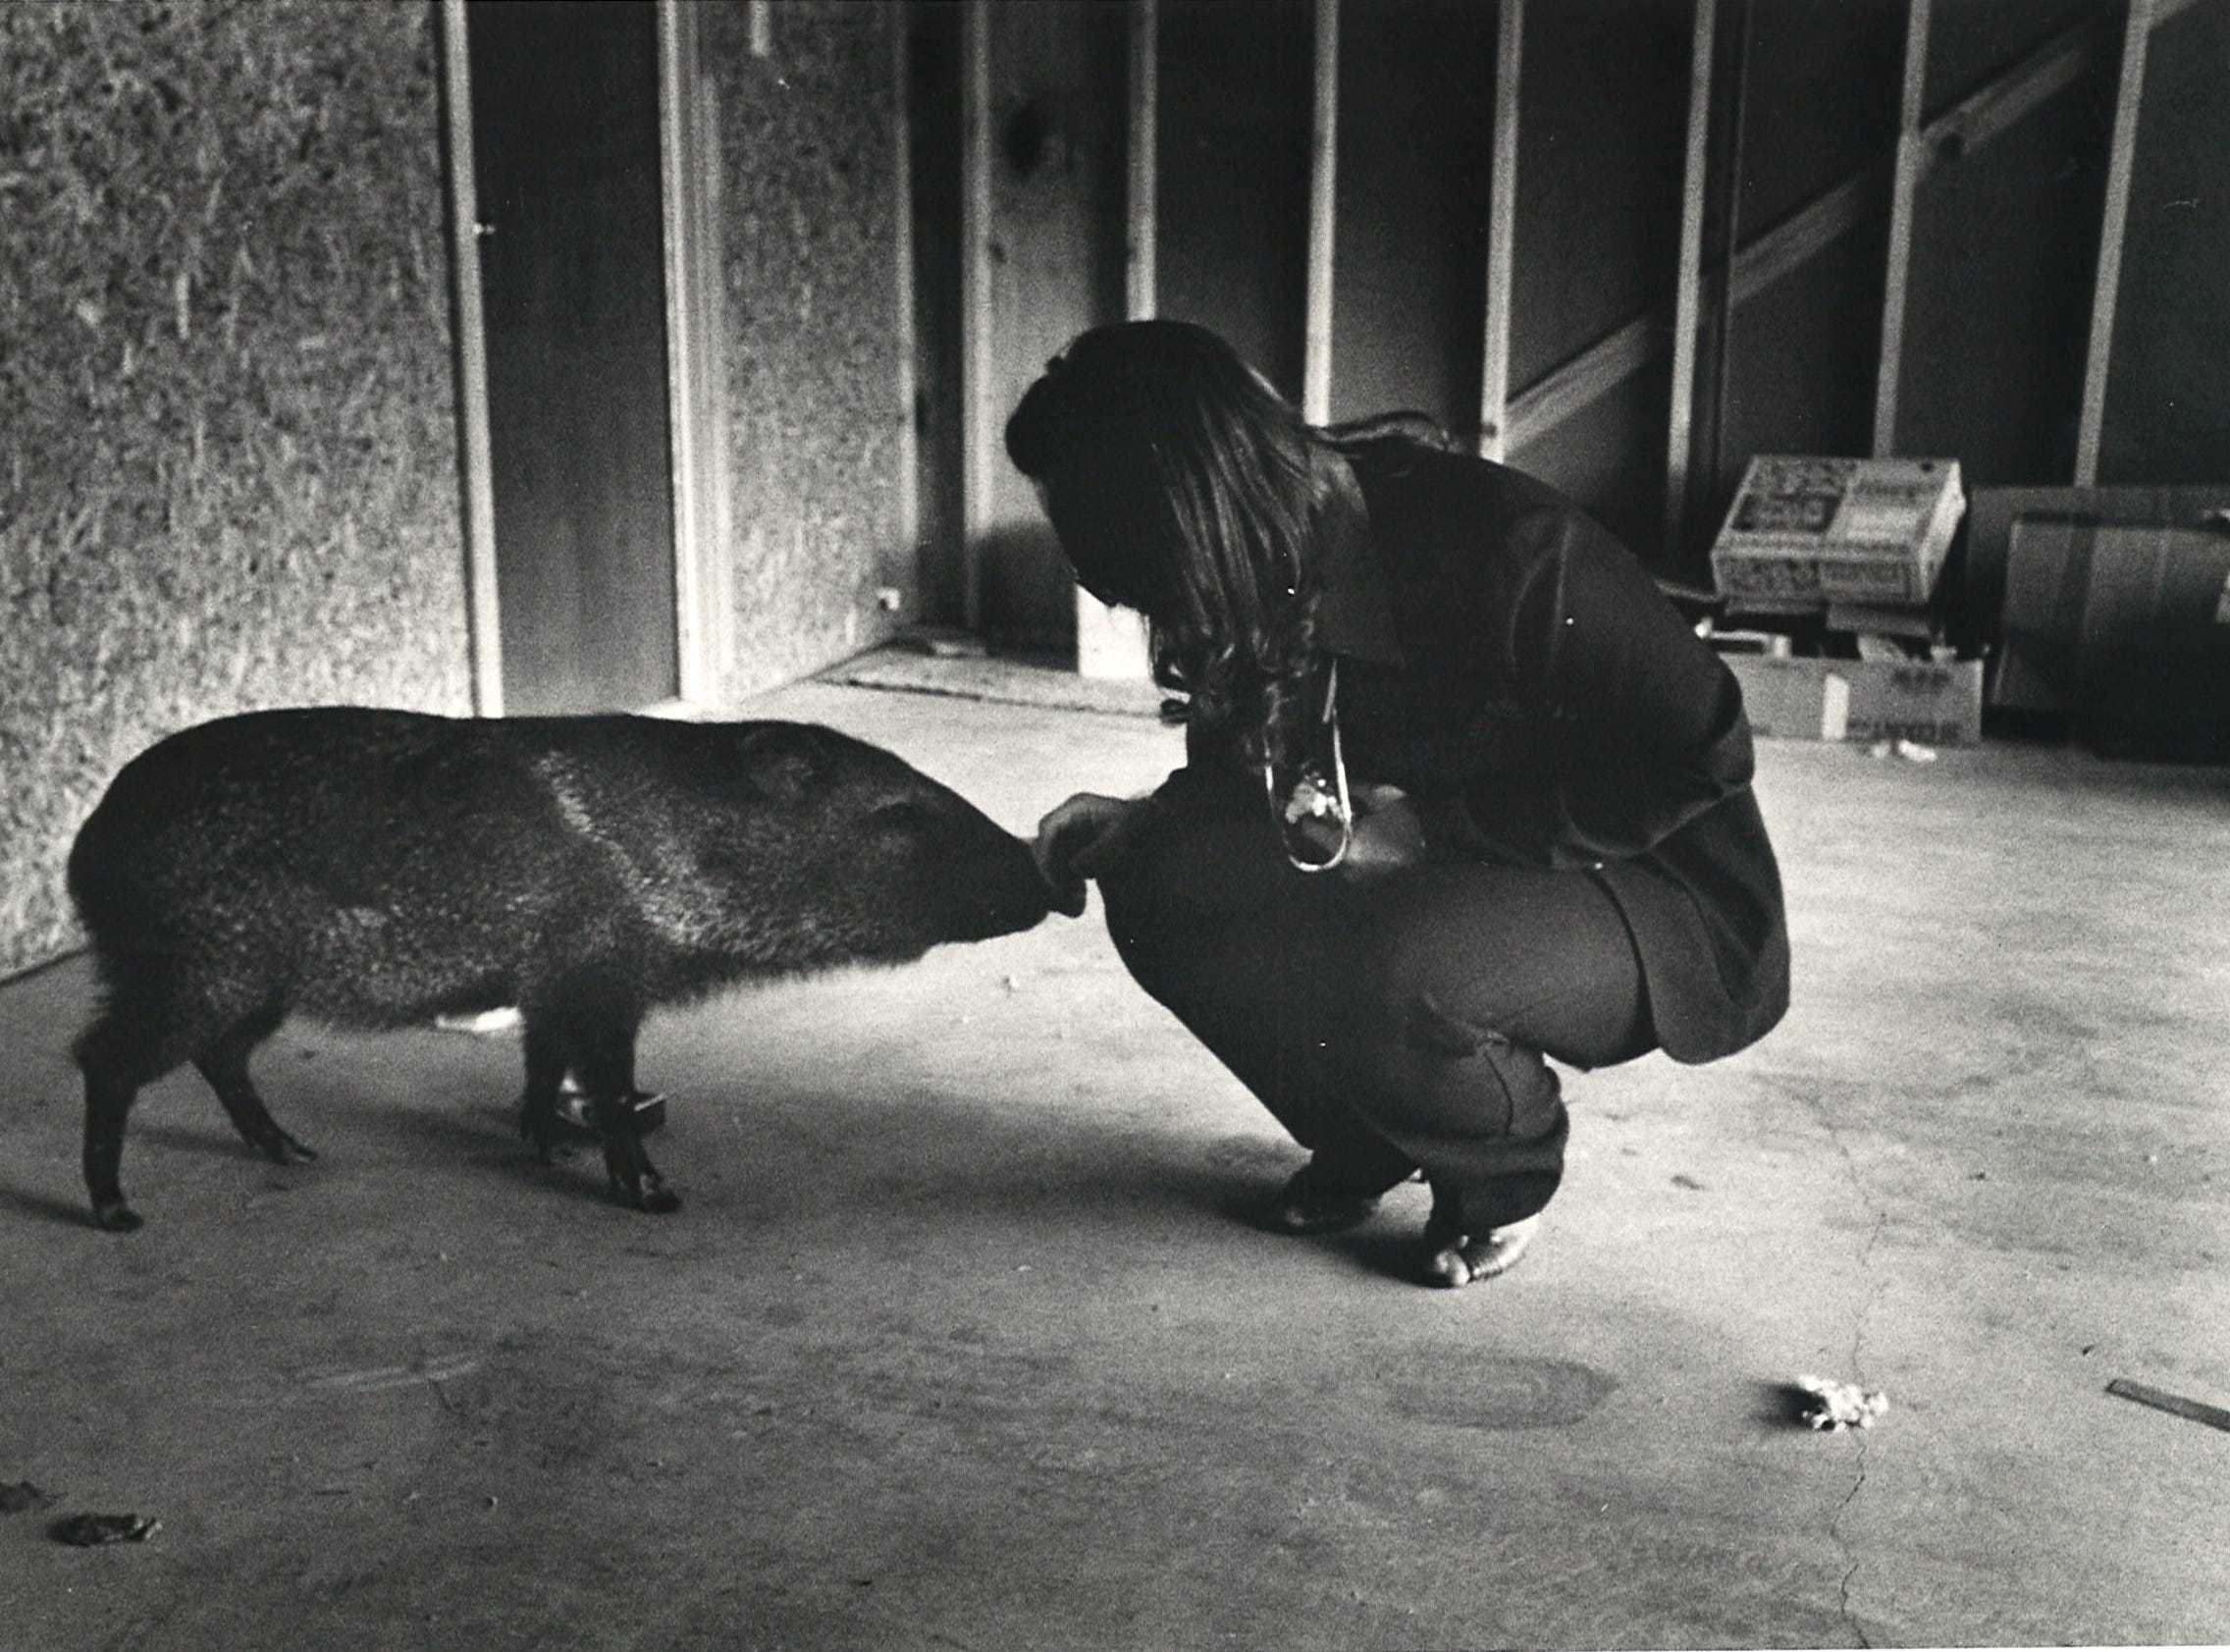 Patsy Thorne feeds a seemingly tame javelina found south of Kingsville in January 1986. Thorne hoped the javelina was Bubba, her pet javelina that was confiscated by Texas Parks and Wildlife and released into the wild, but that wasn't the case. This javelina was only a year old and half the size of Bubba.